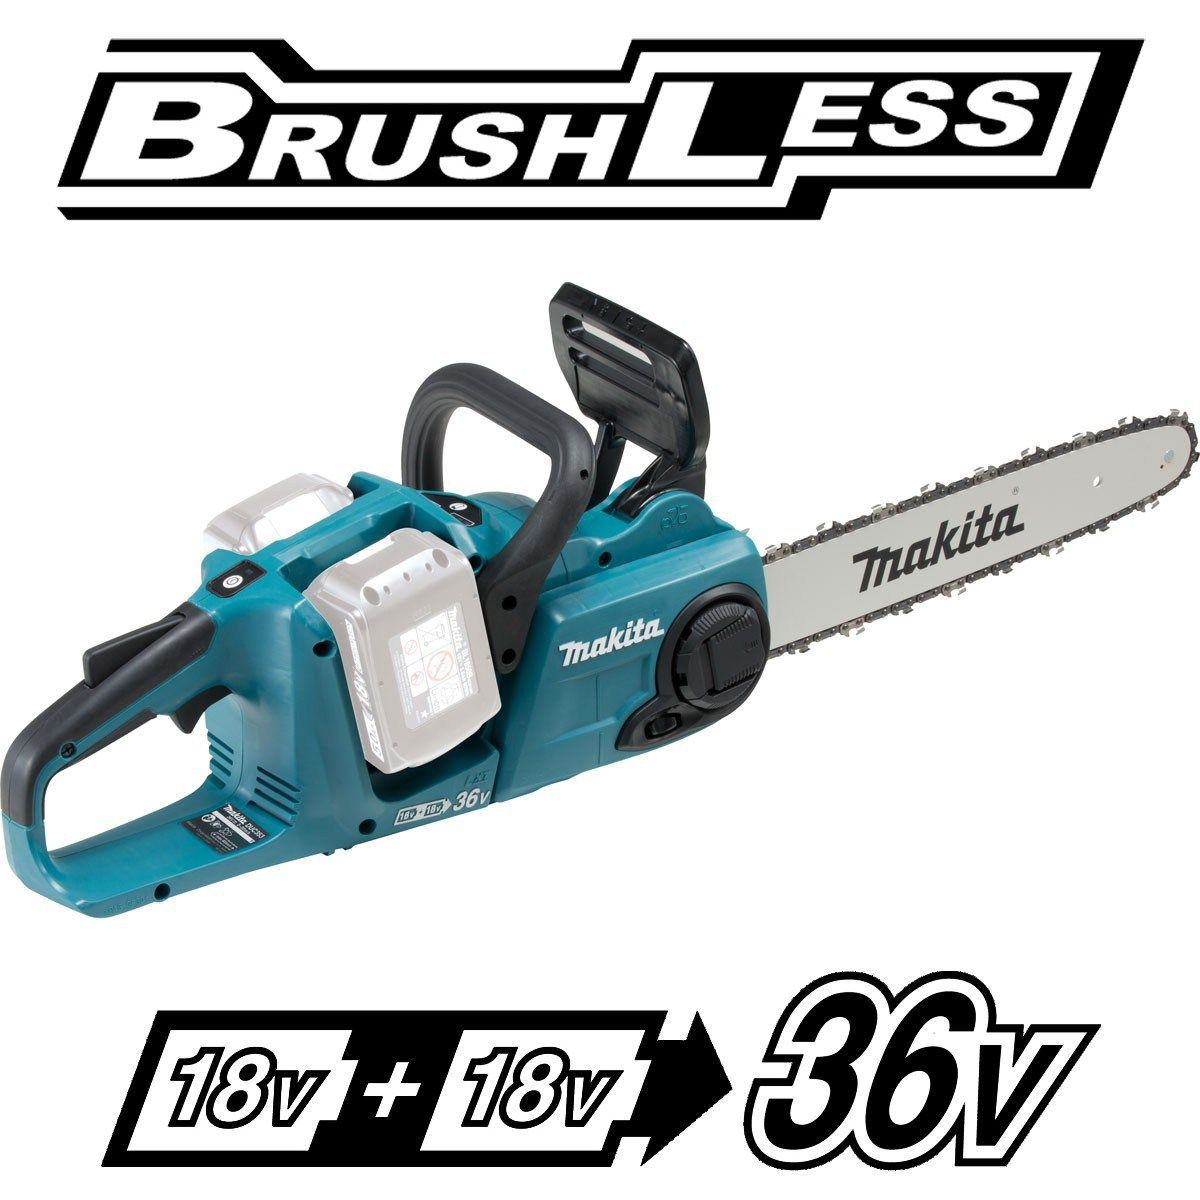 Makita duc353z twin 18v brushless chainsaw herramientas makita duc353z twin 18v brushless chainsaw keyboard keysfo Images